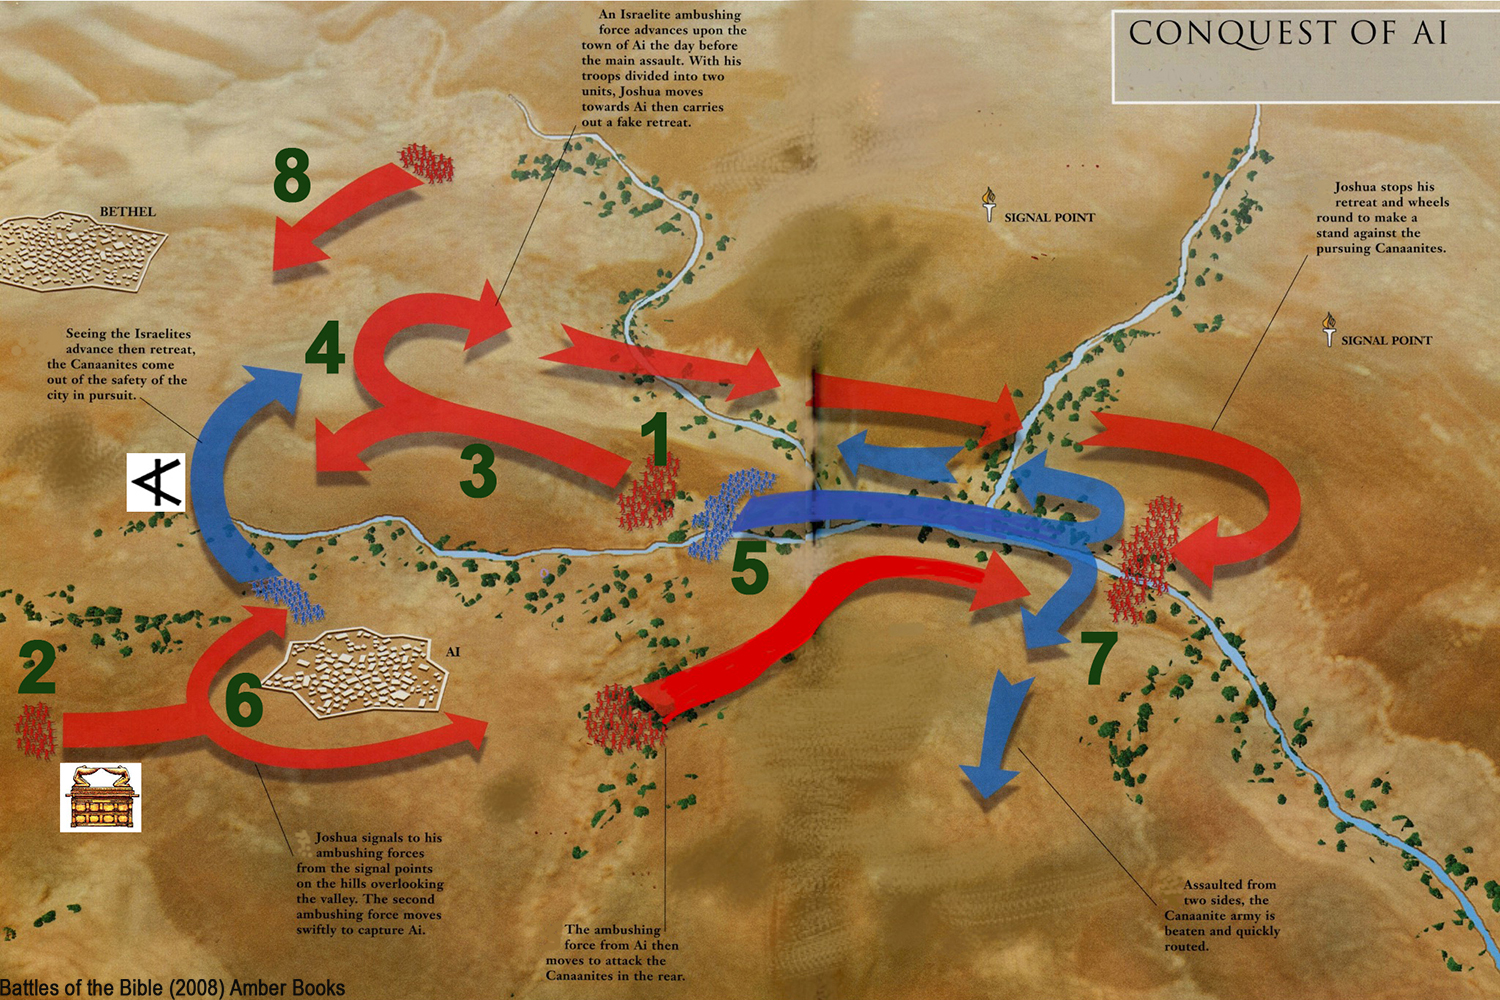 military history, military strategy, ancient war, battle map, Battle of Ai, Joshua 8